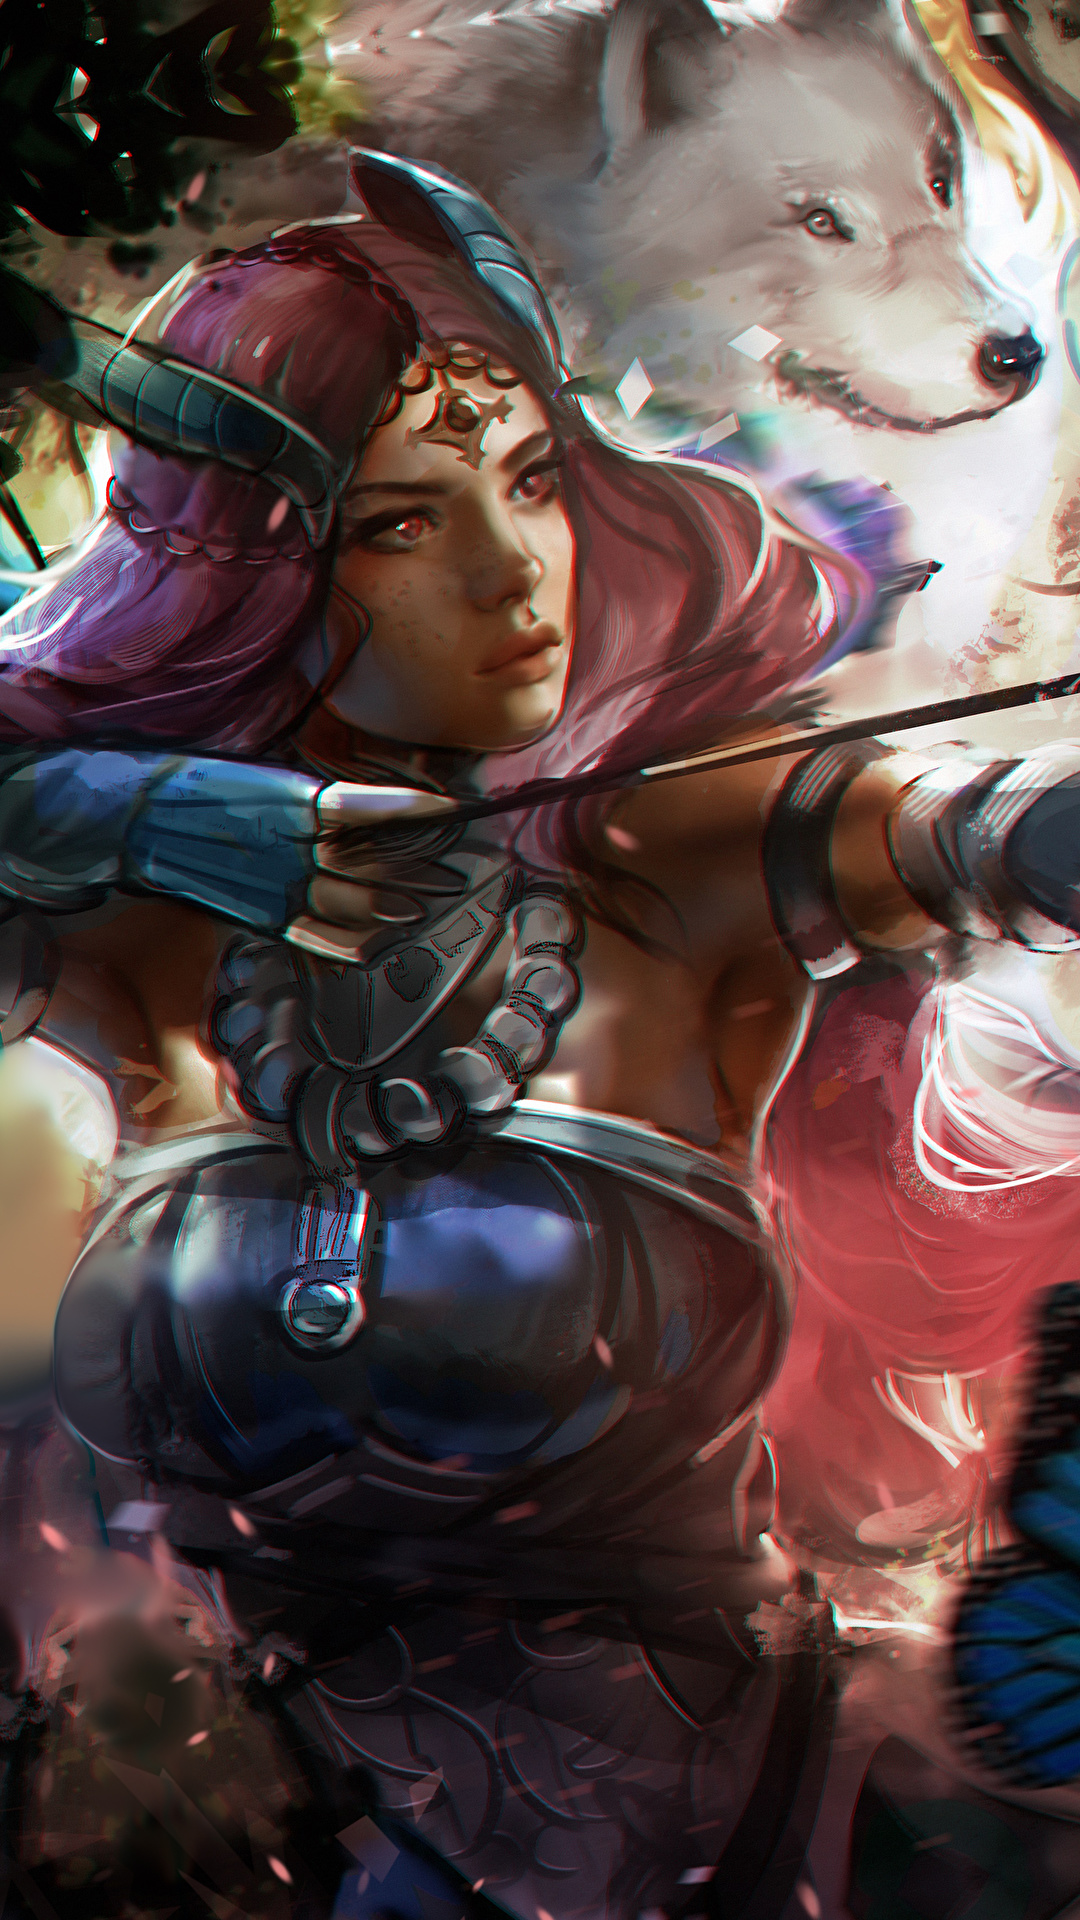 Pictures Guild Wars 2 Archers Warriors Fantasy young woman